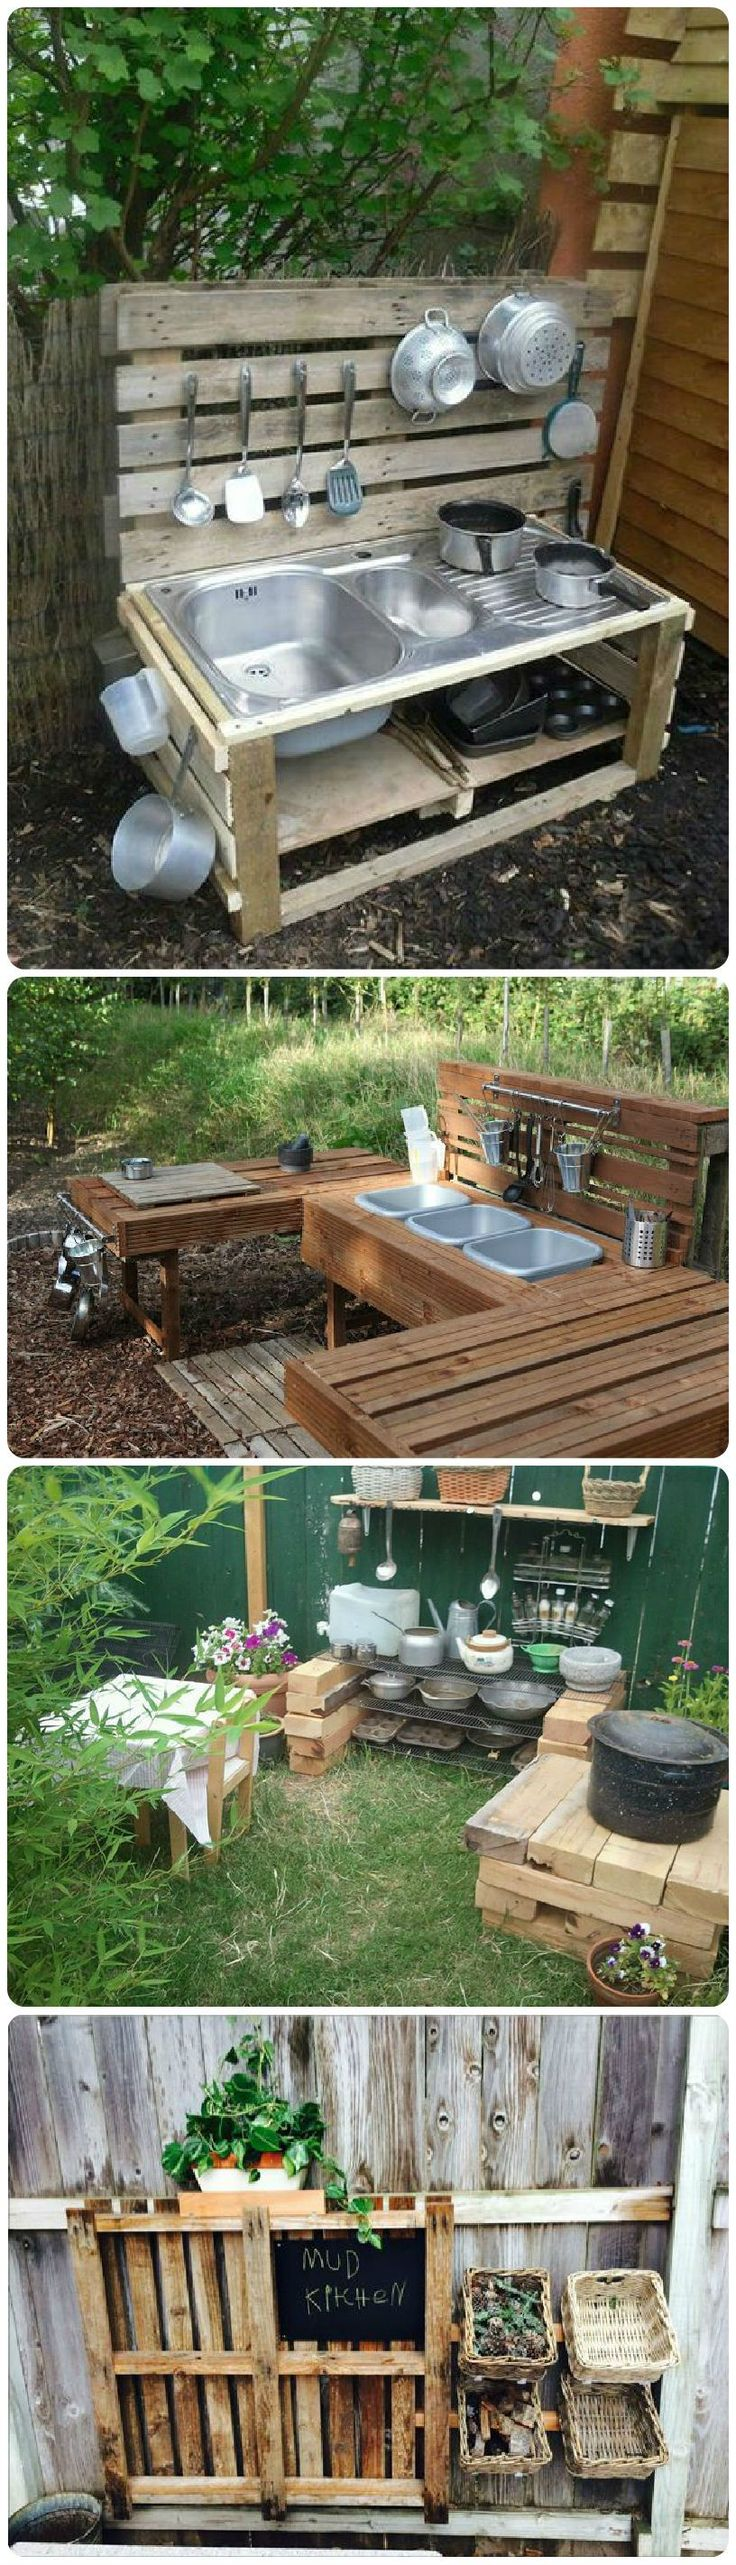 20 mud kitchen ideas #BestOf, #Inspiration, #MudKitchen, #OutdoorKitchen